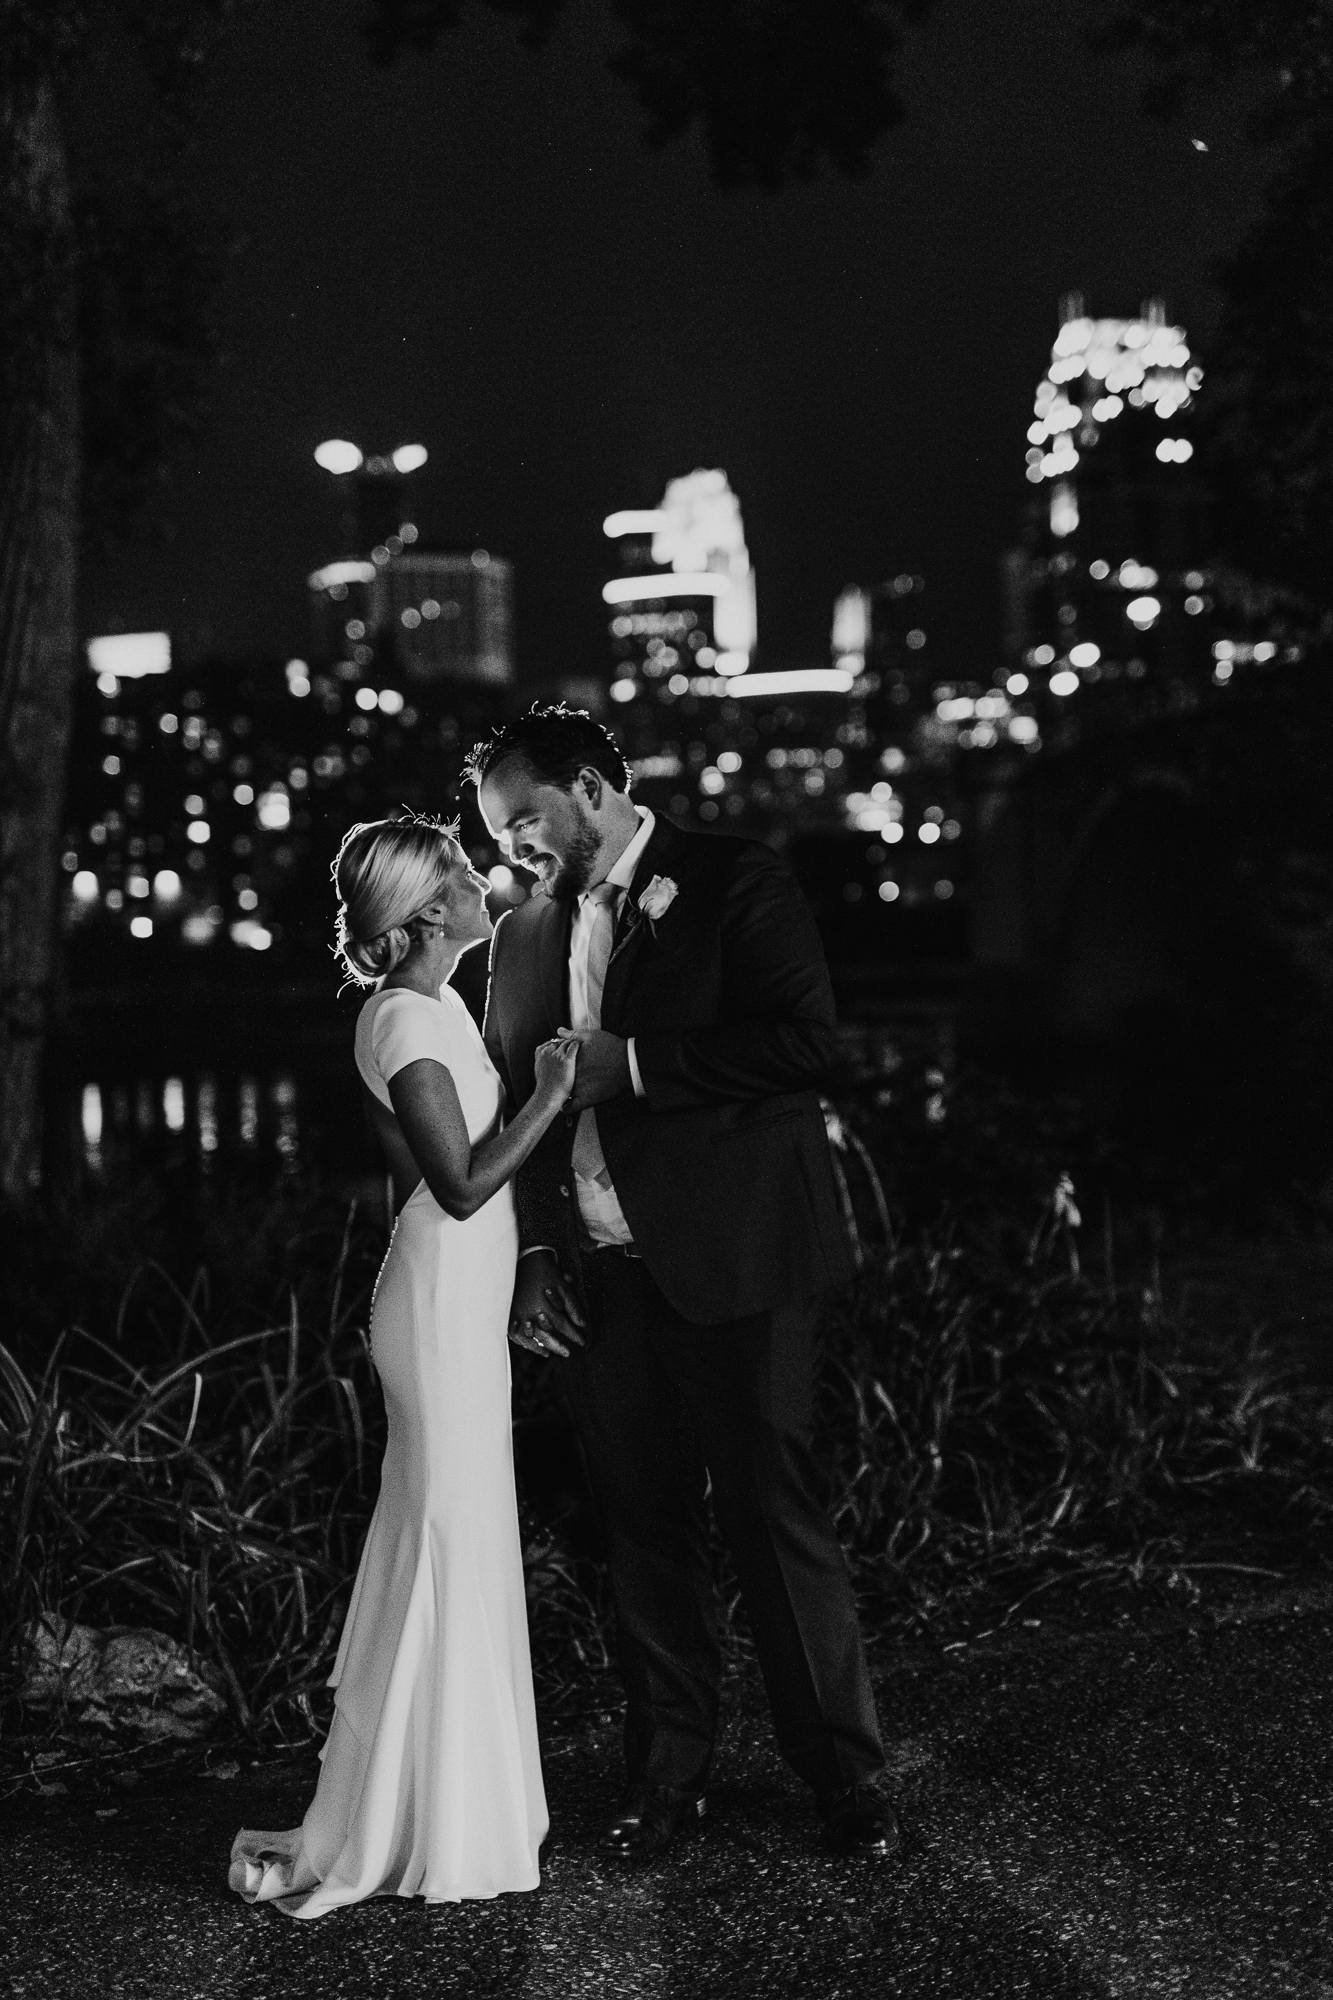 Minneapolis Wedding Photography at Aster Cafe-51.jpg